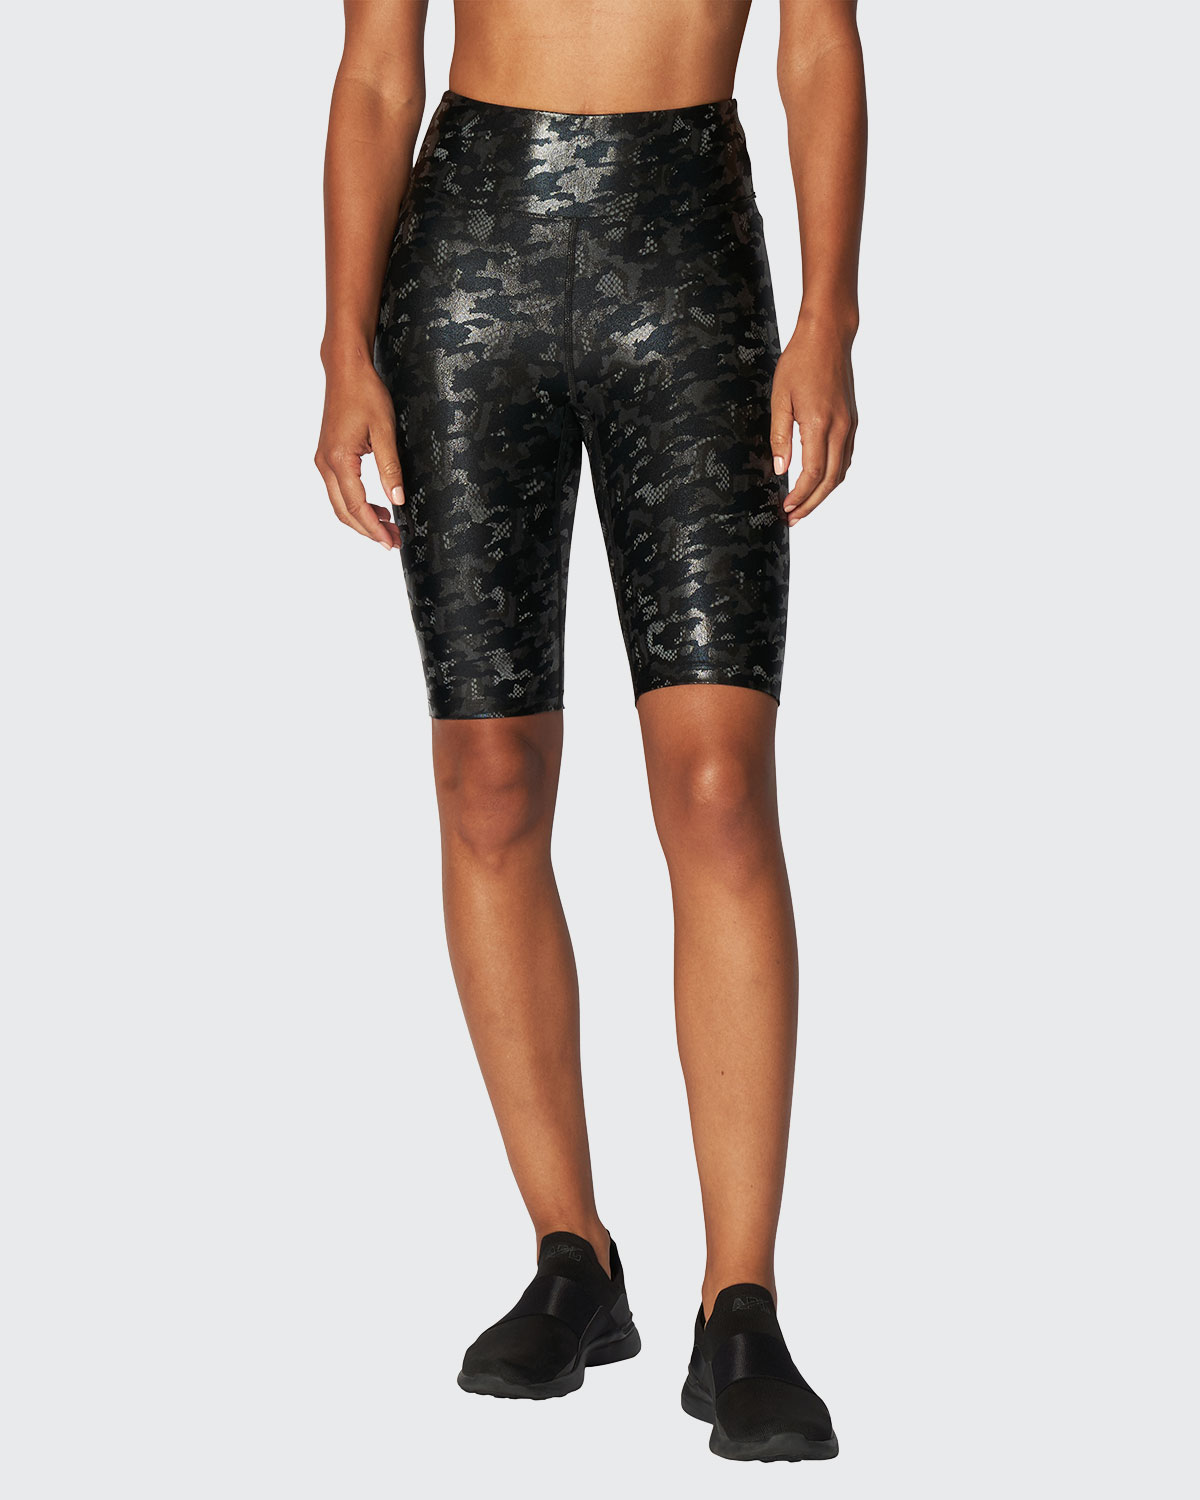 Heroine Sport MARVEL SHINEY CAMO BIKER SHORTS